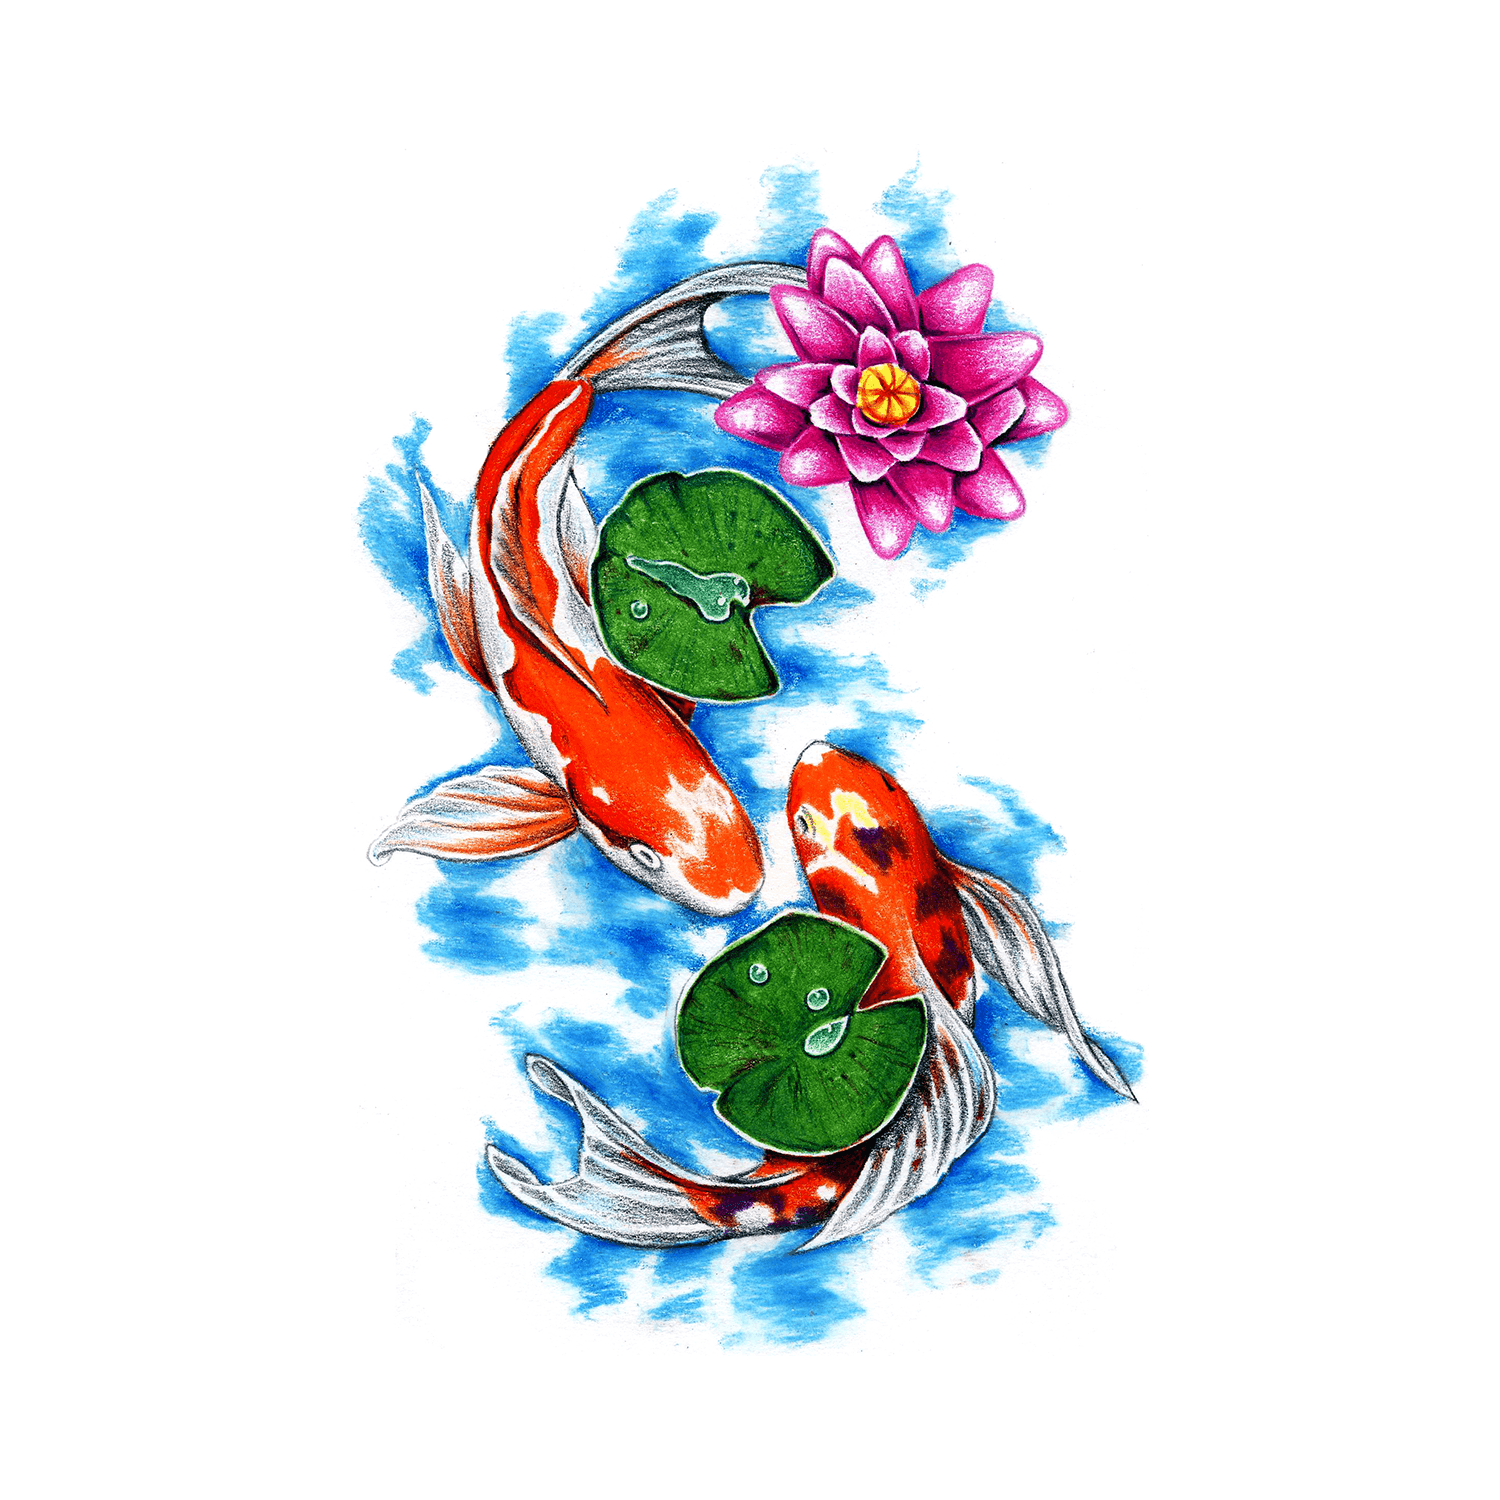 Koi pond koi pond temporary tattoo momentary ink for Koi pond tattoo